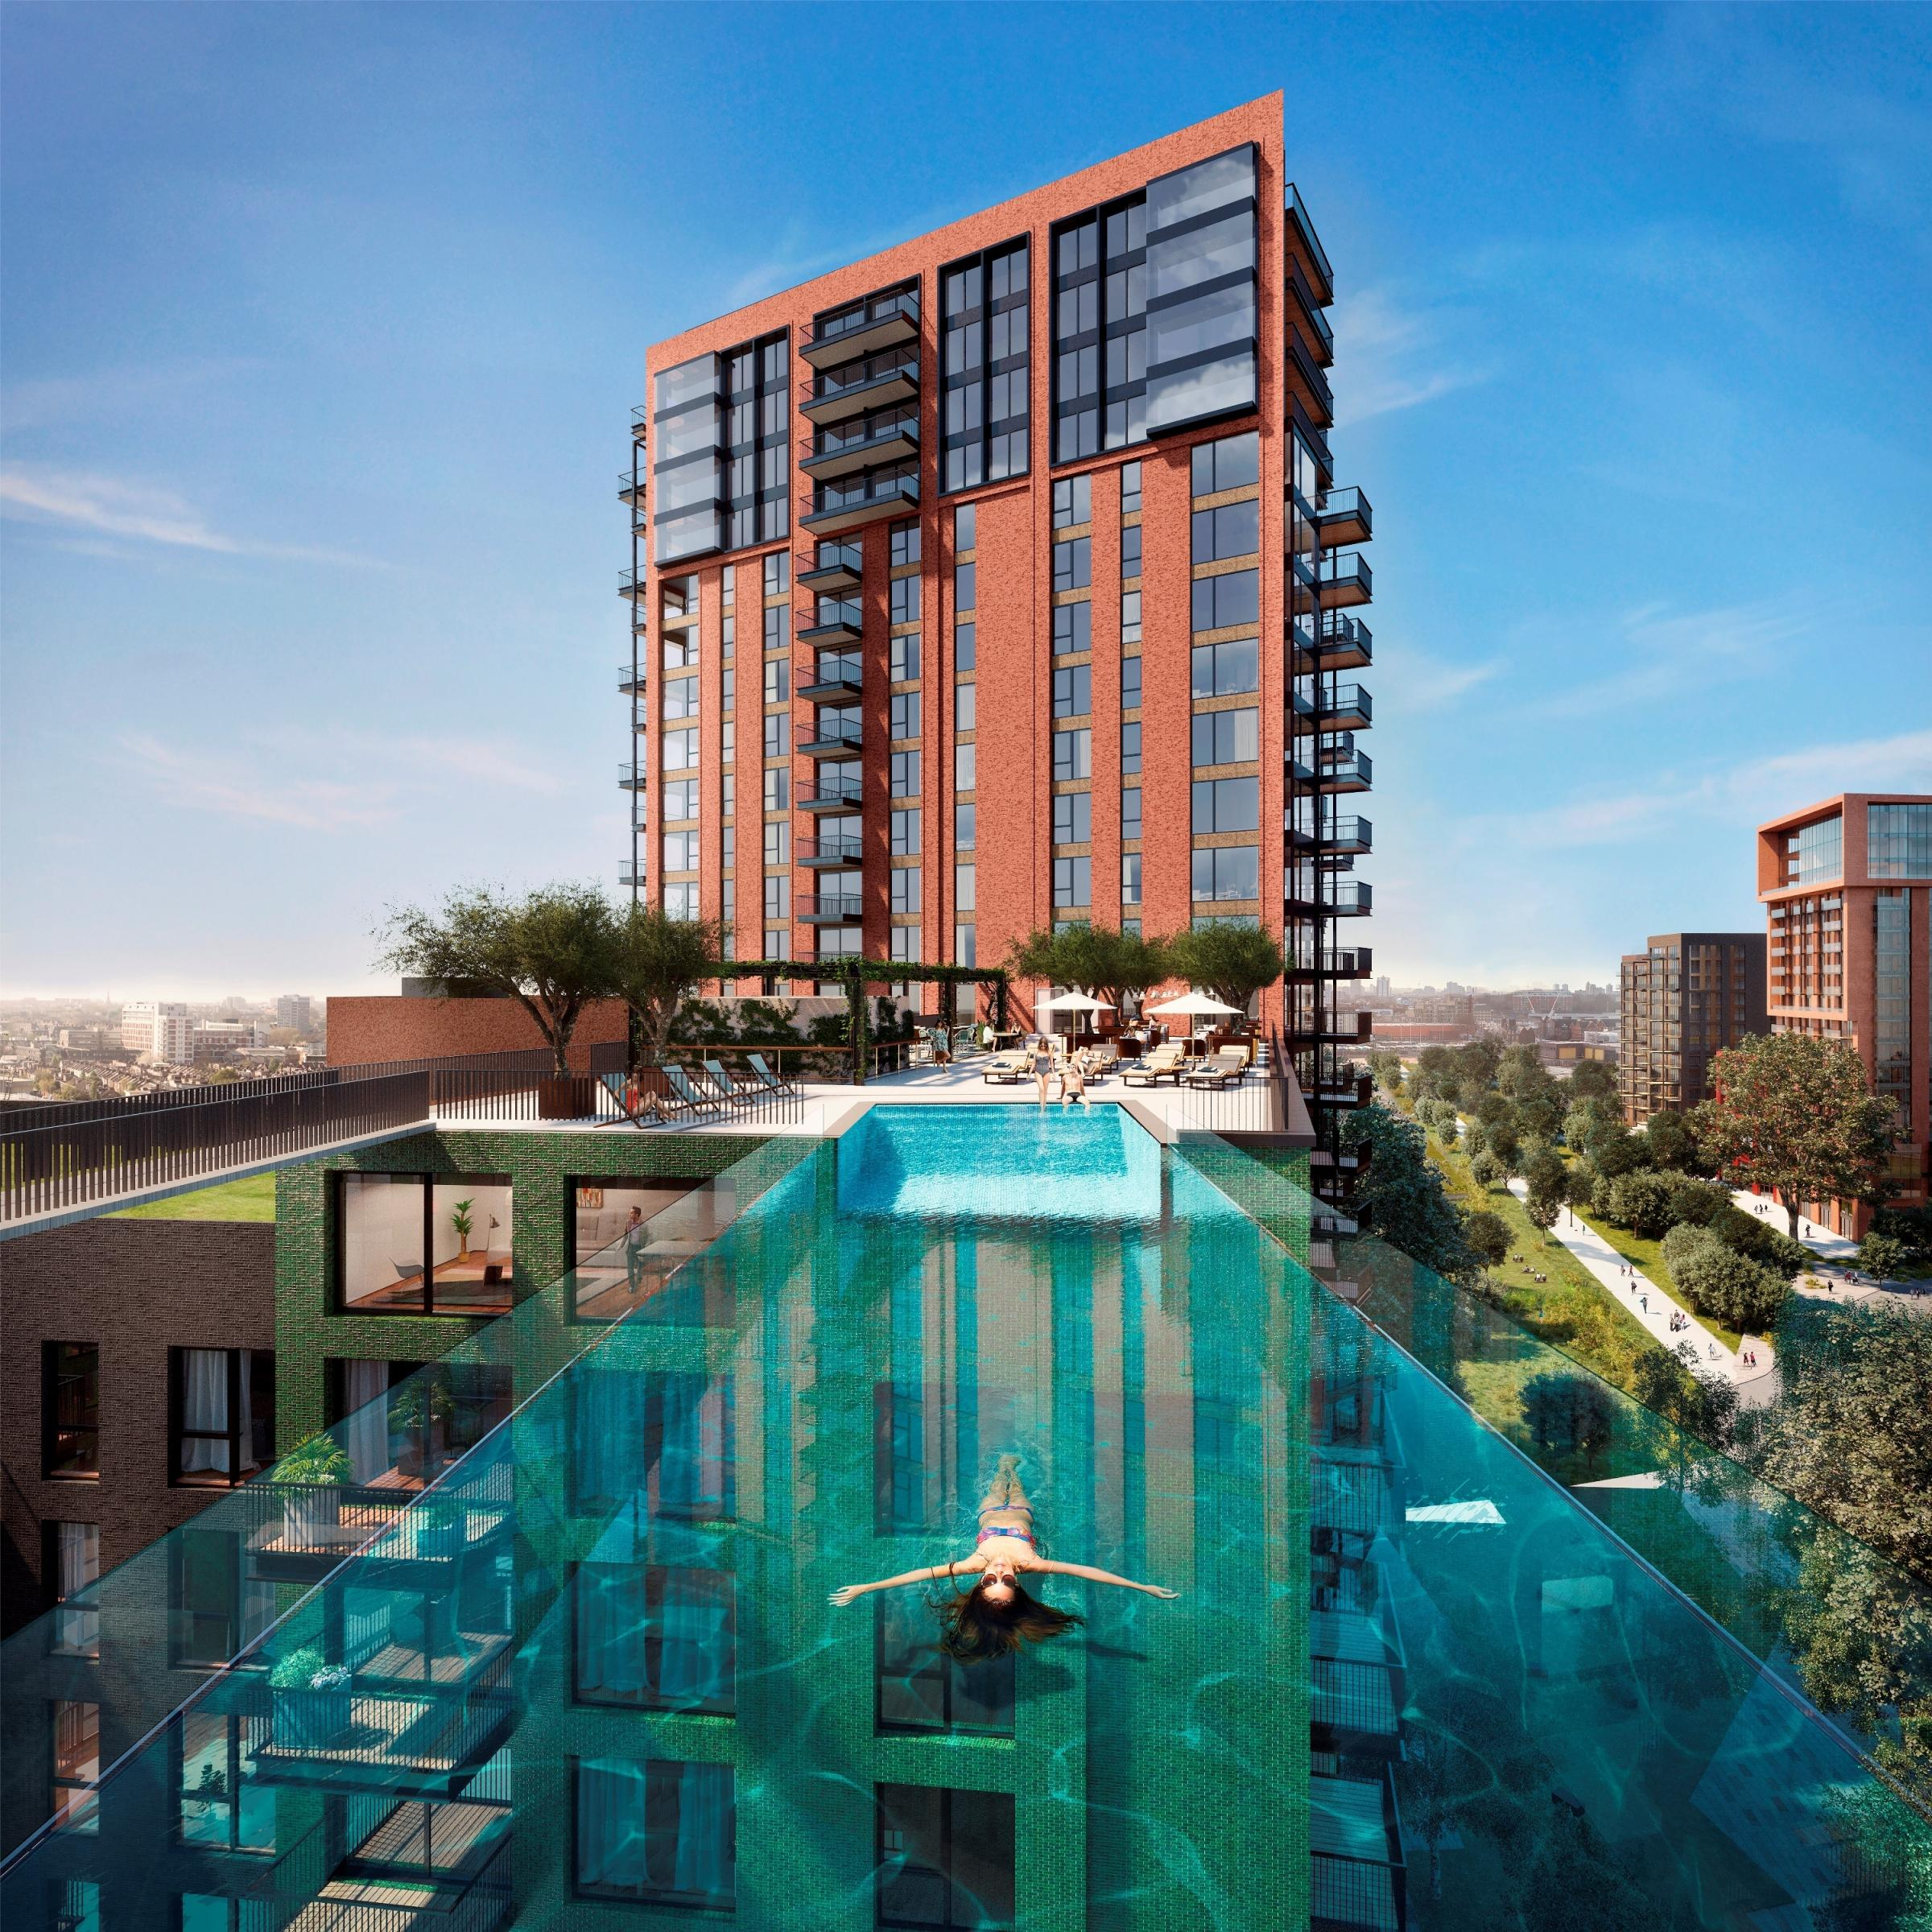 A sky pool TEN STOREYS HIGH could be coming to Nine Elms